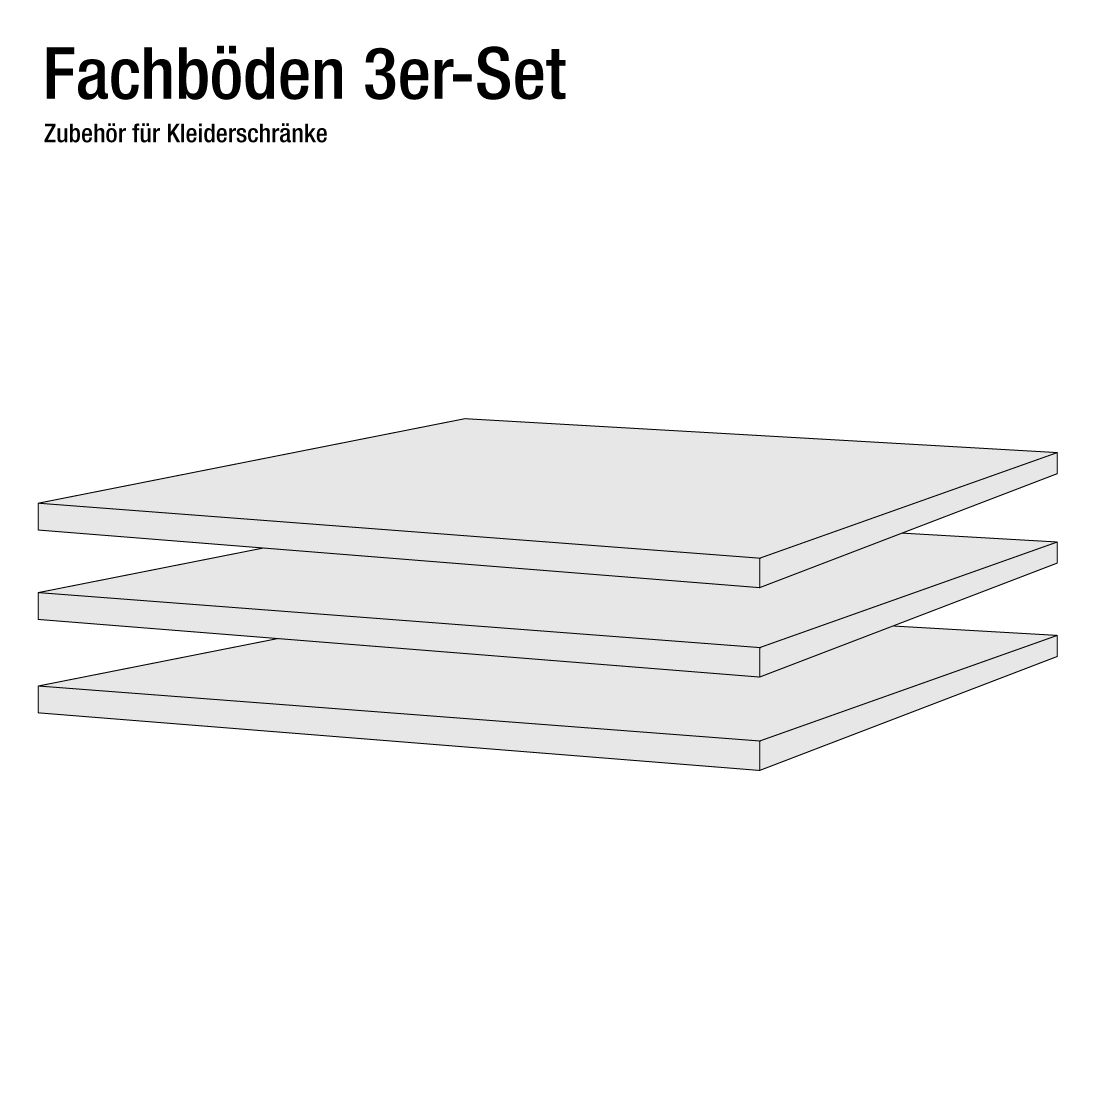 50er Fachboden (3er-Set) – fresh to go, fresh to go günstig bestellen